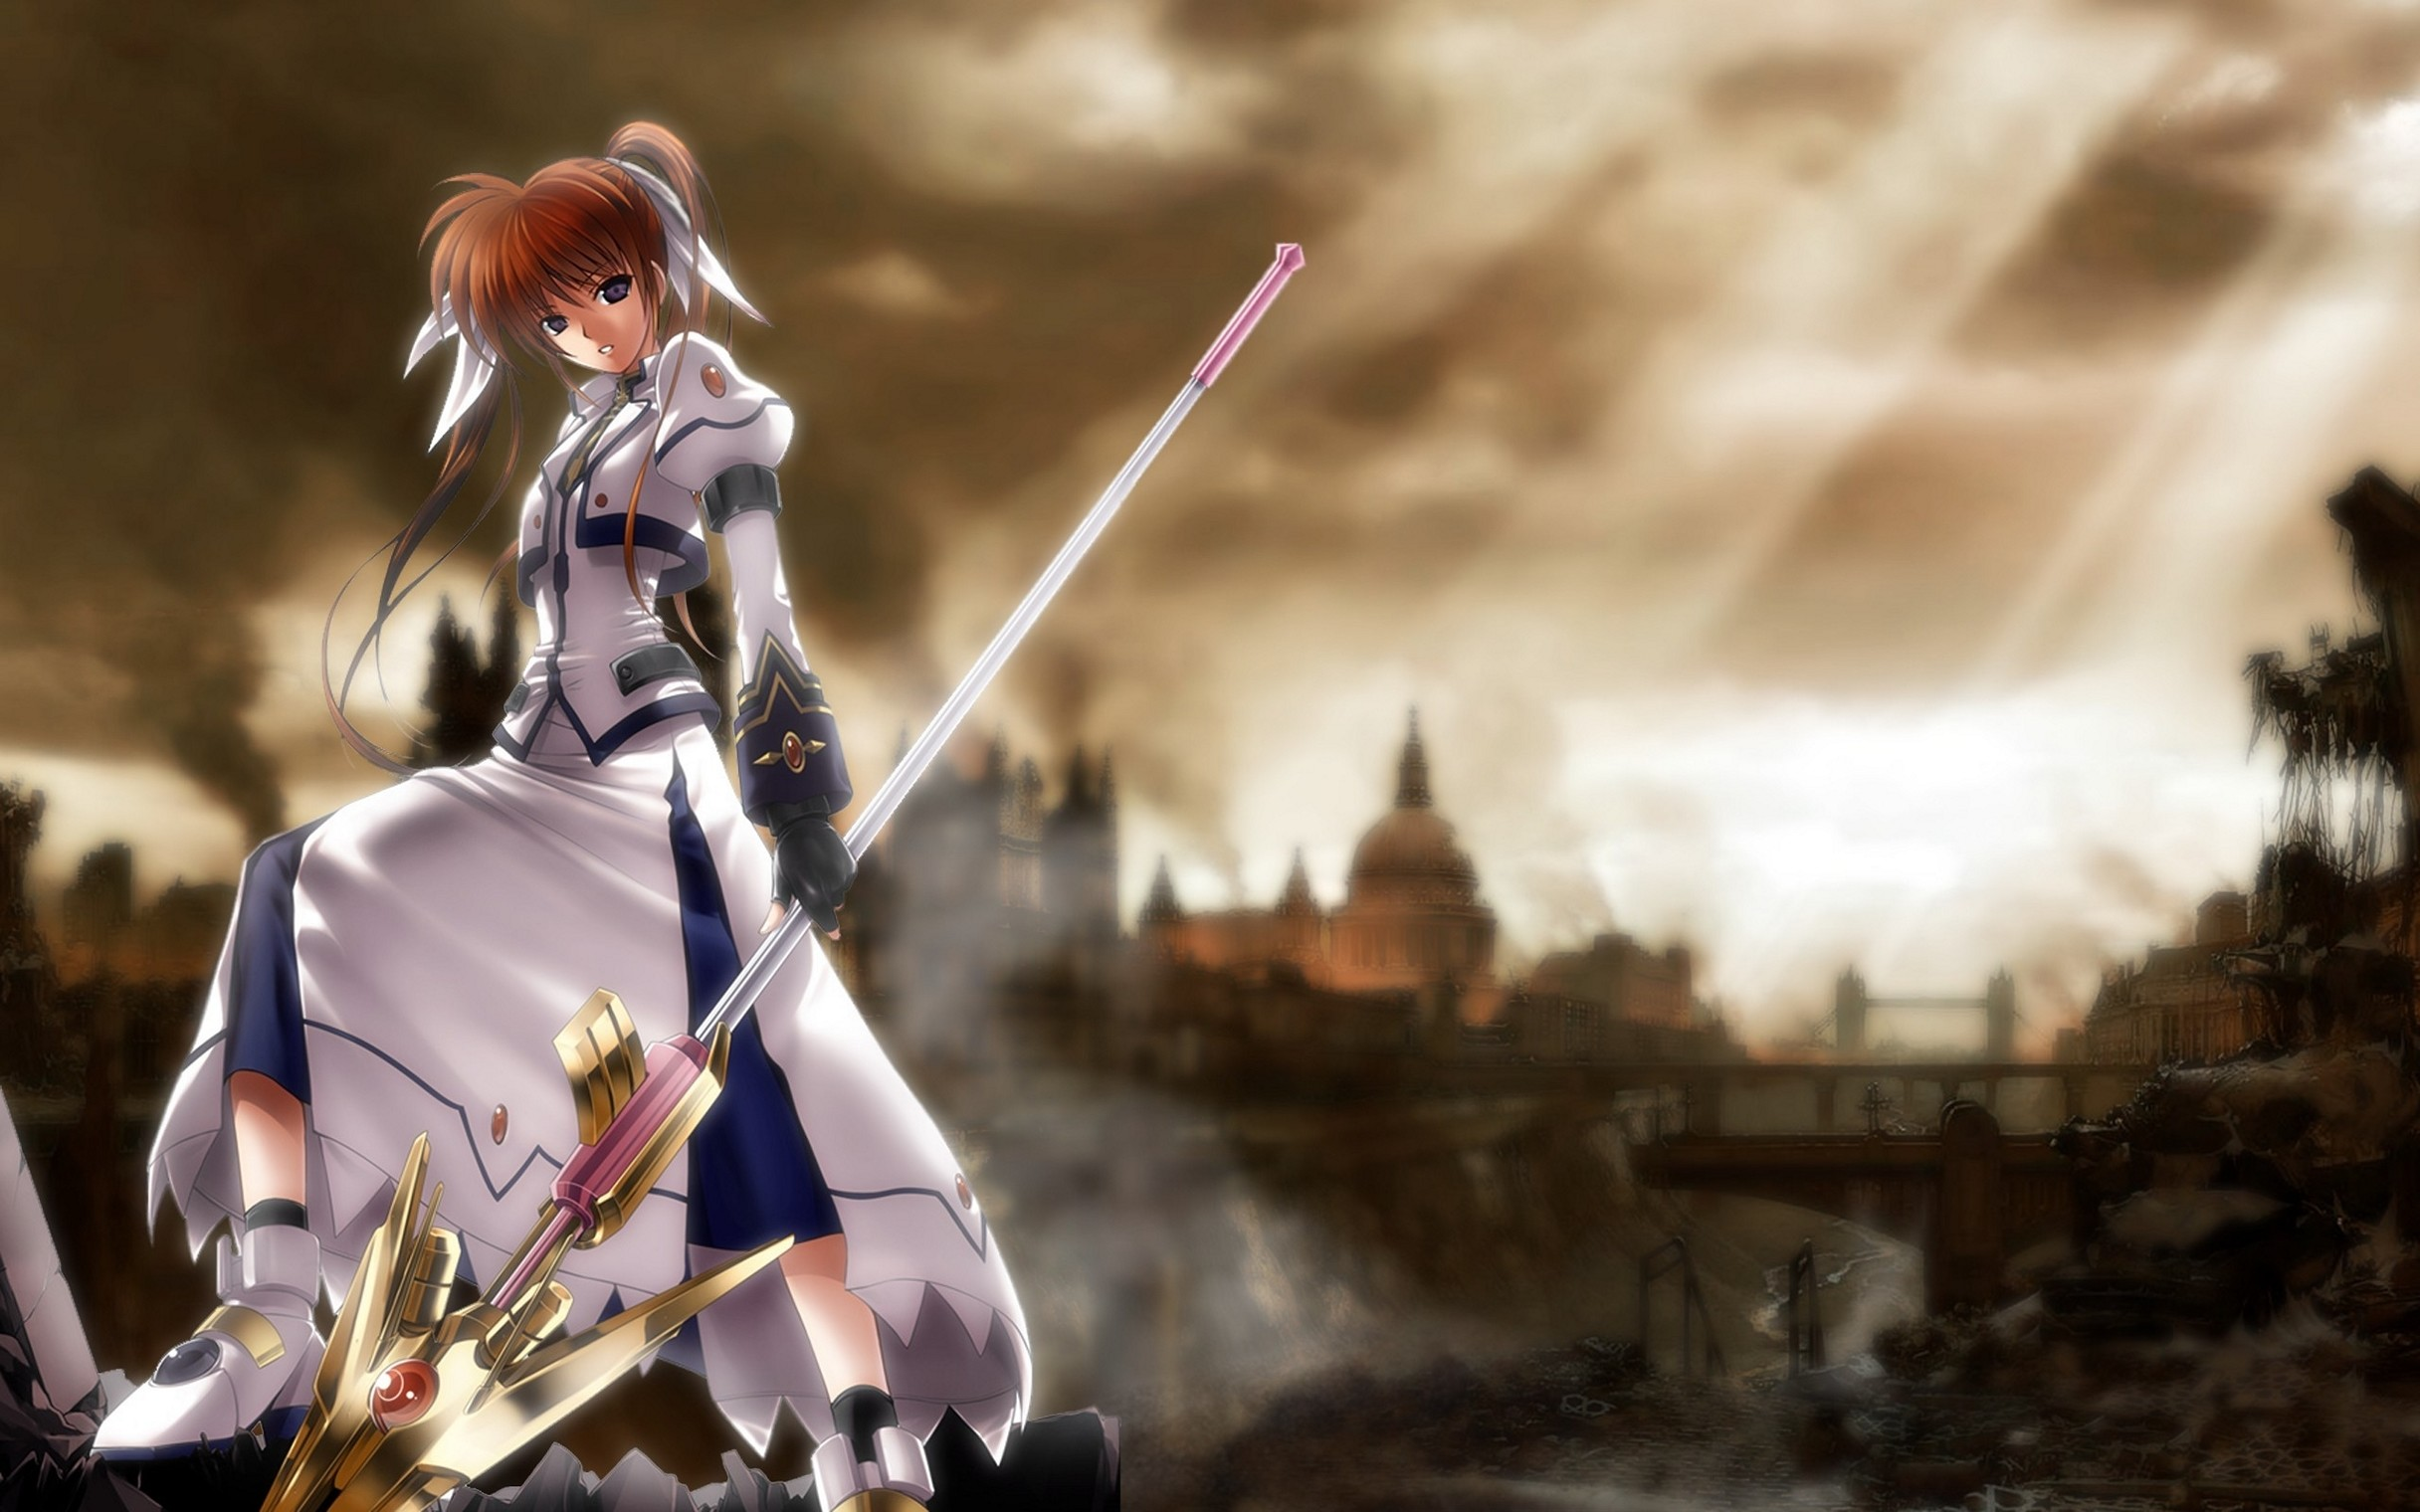 2432x1520 Magical Girl Lyrical Nanoha Girl Gun Landscape Warrior Anime Wild Hd  Wallpaper ASV297